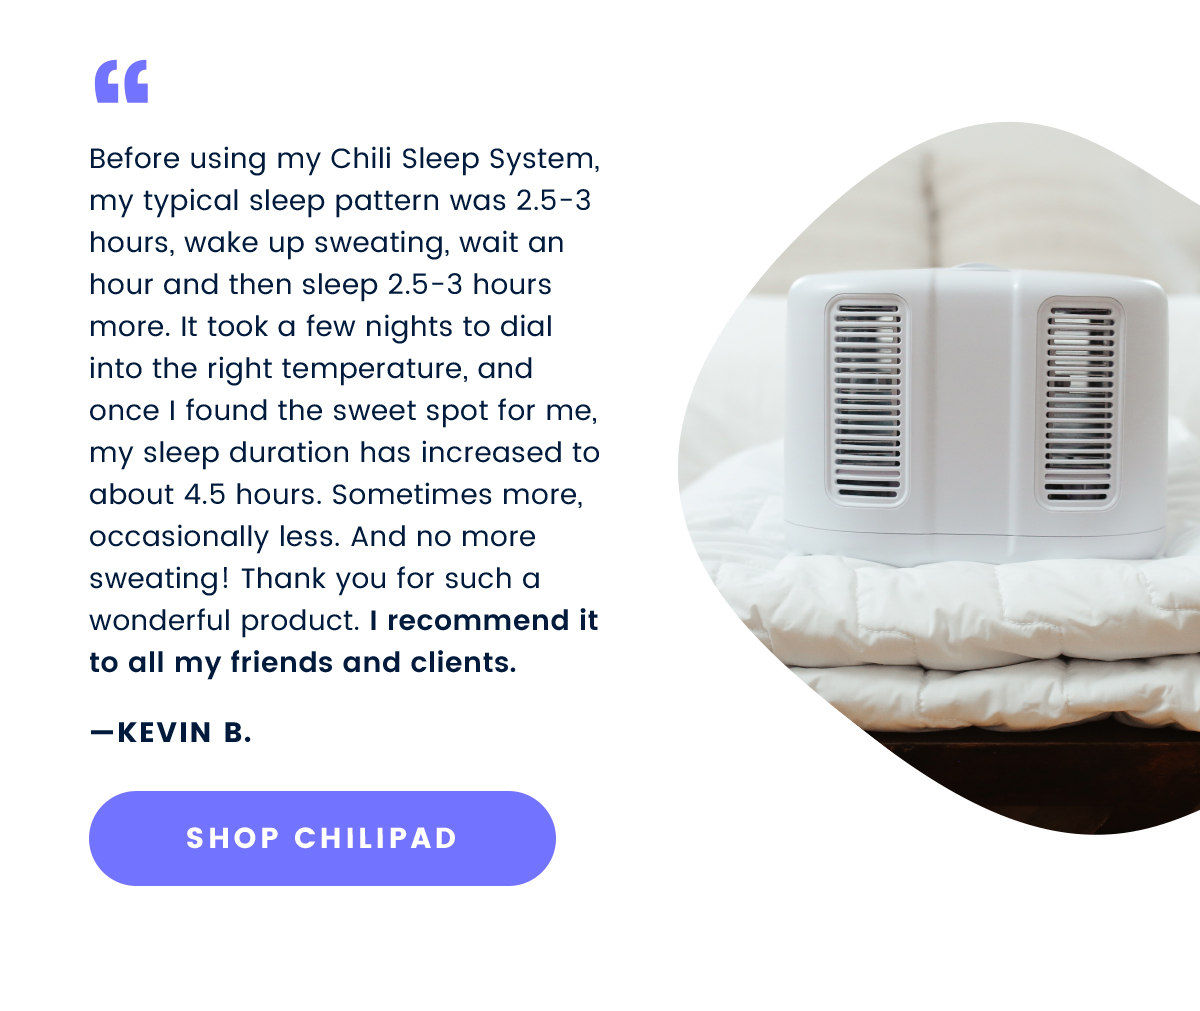 I recommend it to all my friends and clients. - Kevin B. | SHOP CHILIPAD